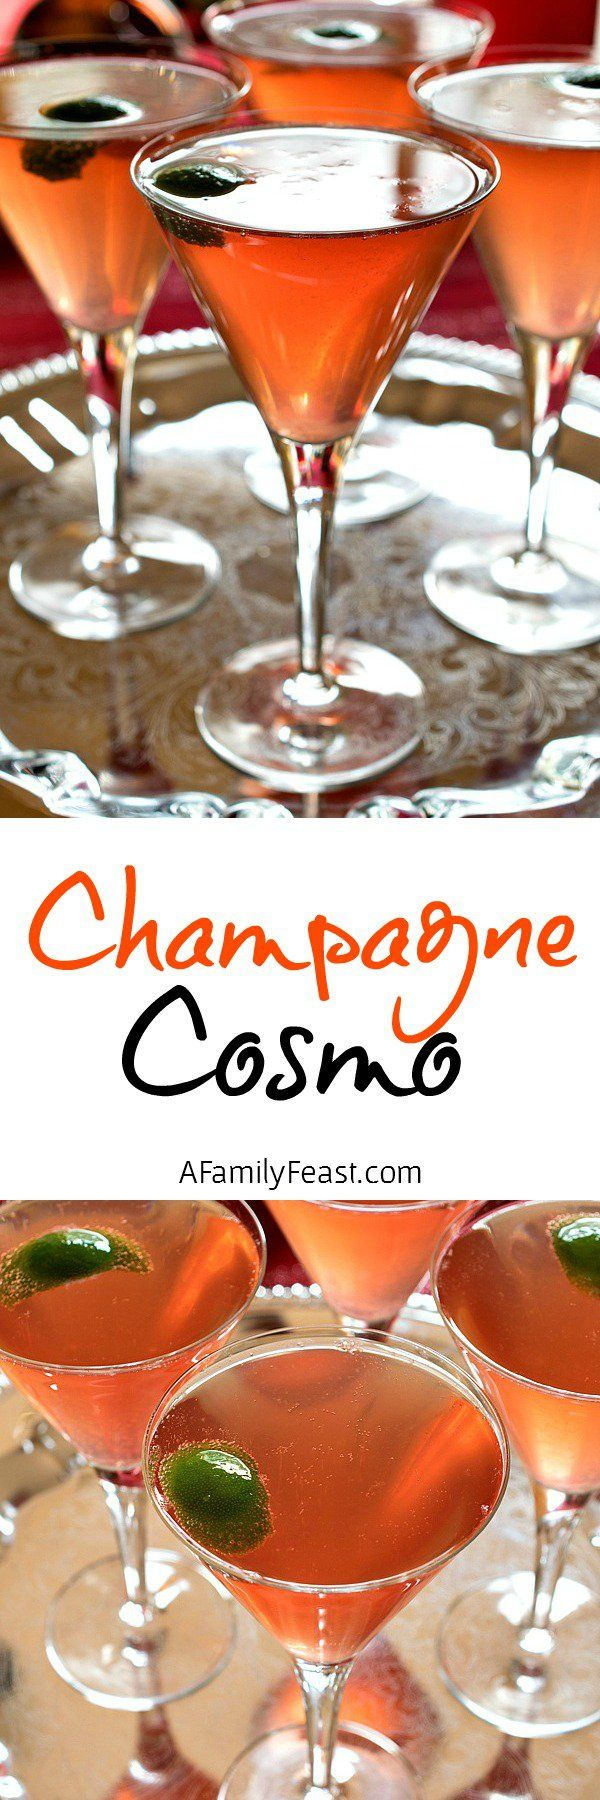 Champagne Cosmo - A Family Feast. Subbing orange juice for the Grand Marnier and using sparkling cranberry cider for the Champagne would make a yummy alcohol-free drink, if desired.